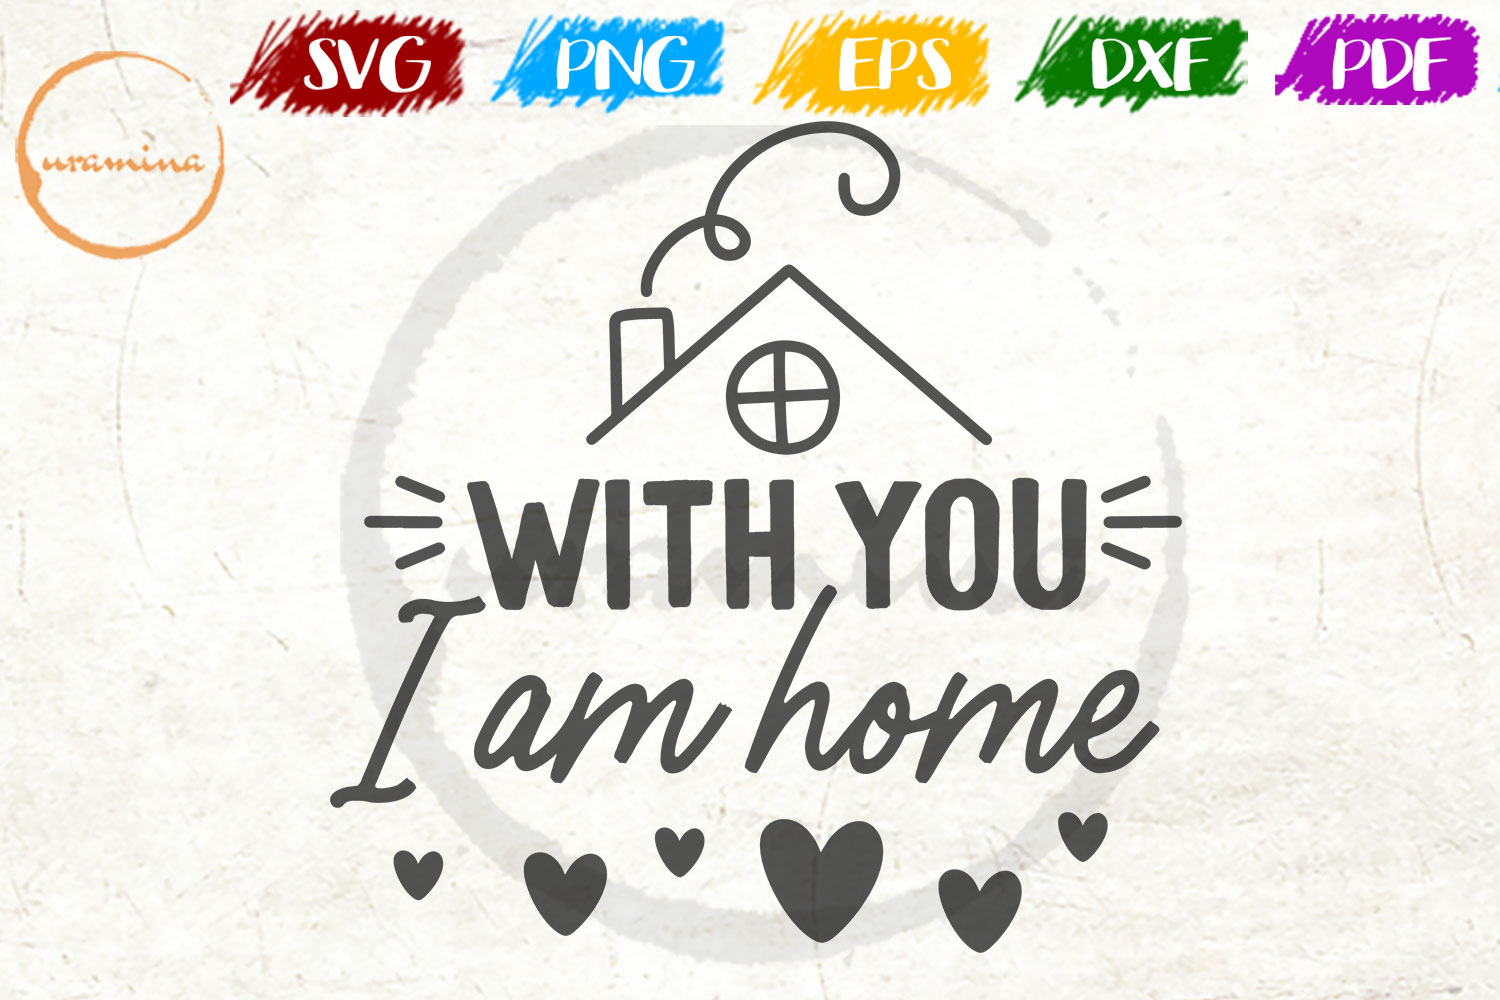 Download Free With You I Am Home Graphic By Uramina Creative Fabrica for Cricut Explore, Silhouette and other cutting machines.